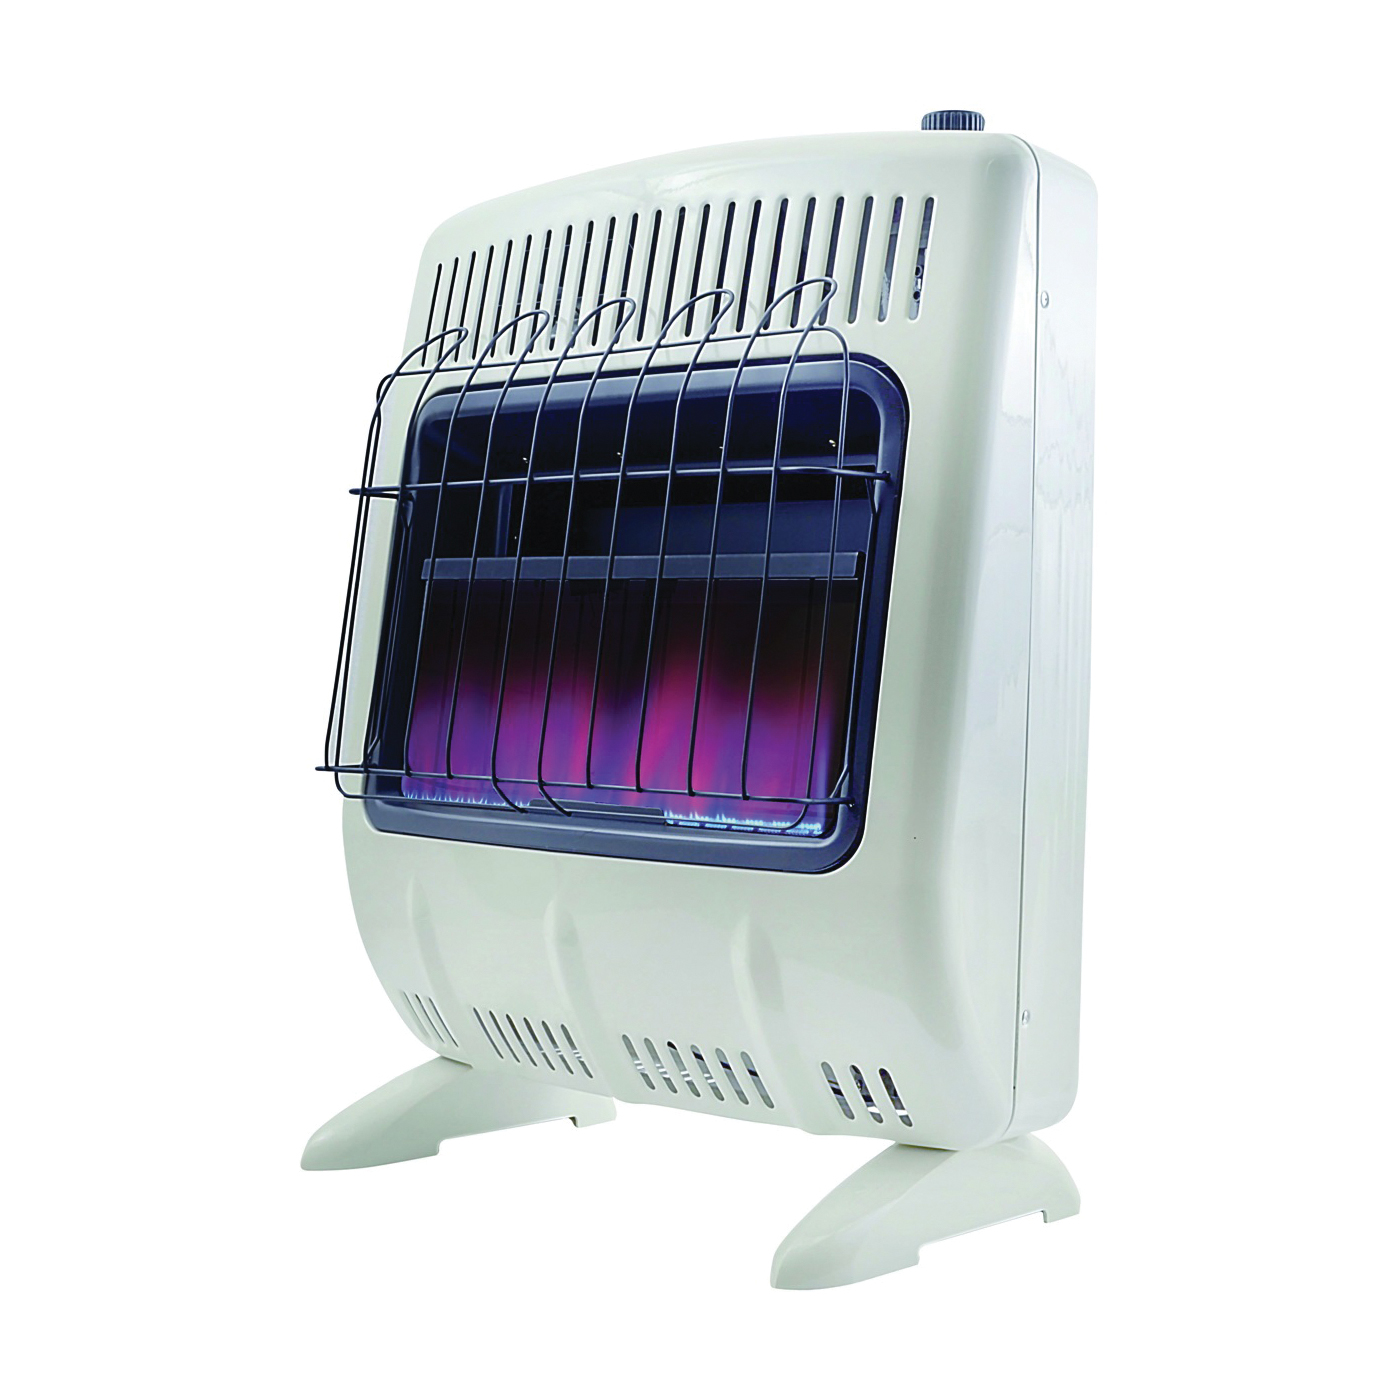 Picture of Mr. Heater F299721 Vent-Free Blue Flame Gas Heater, Natural Gas, 20000 Btu, 500 sq-ft Heating Area